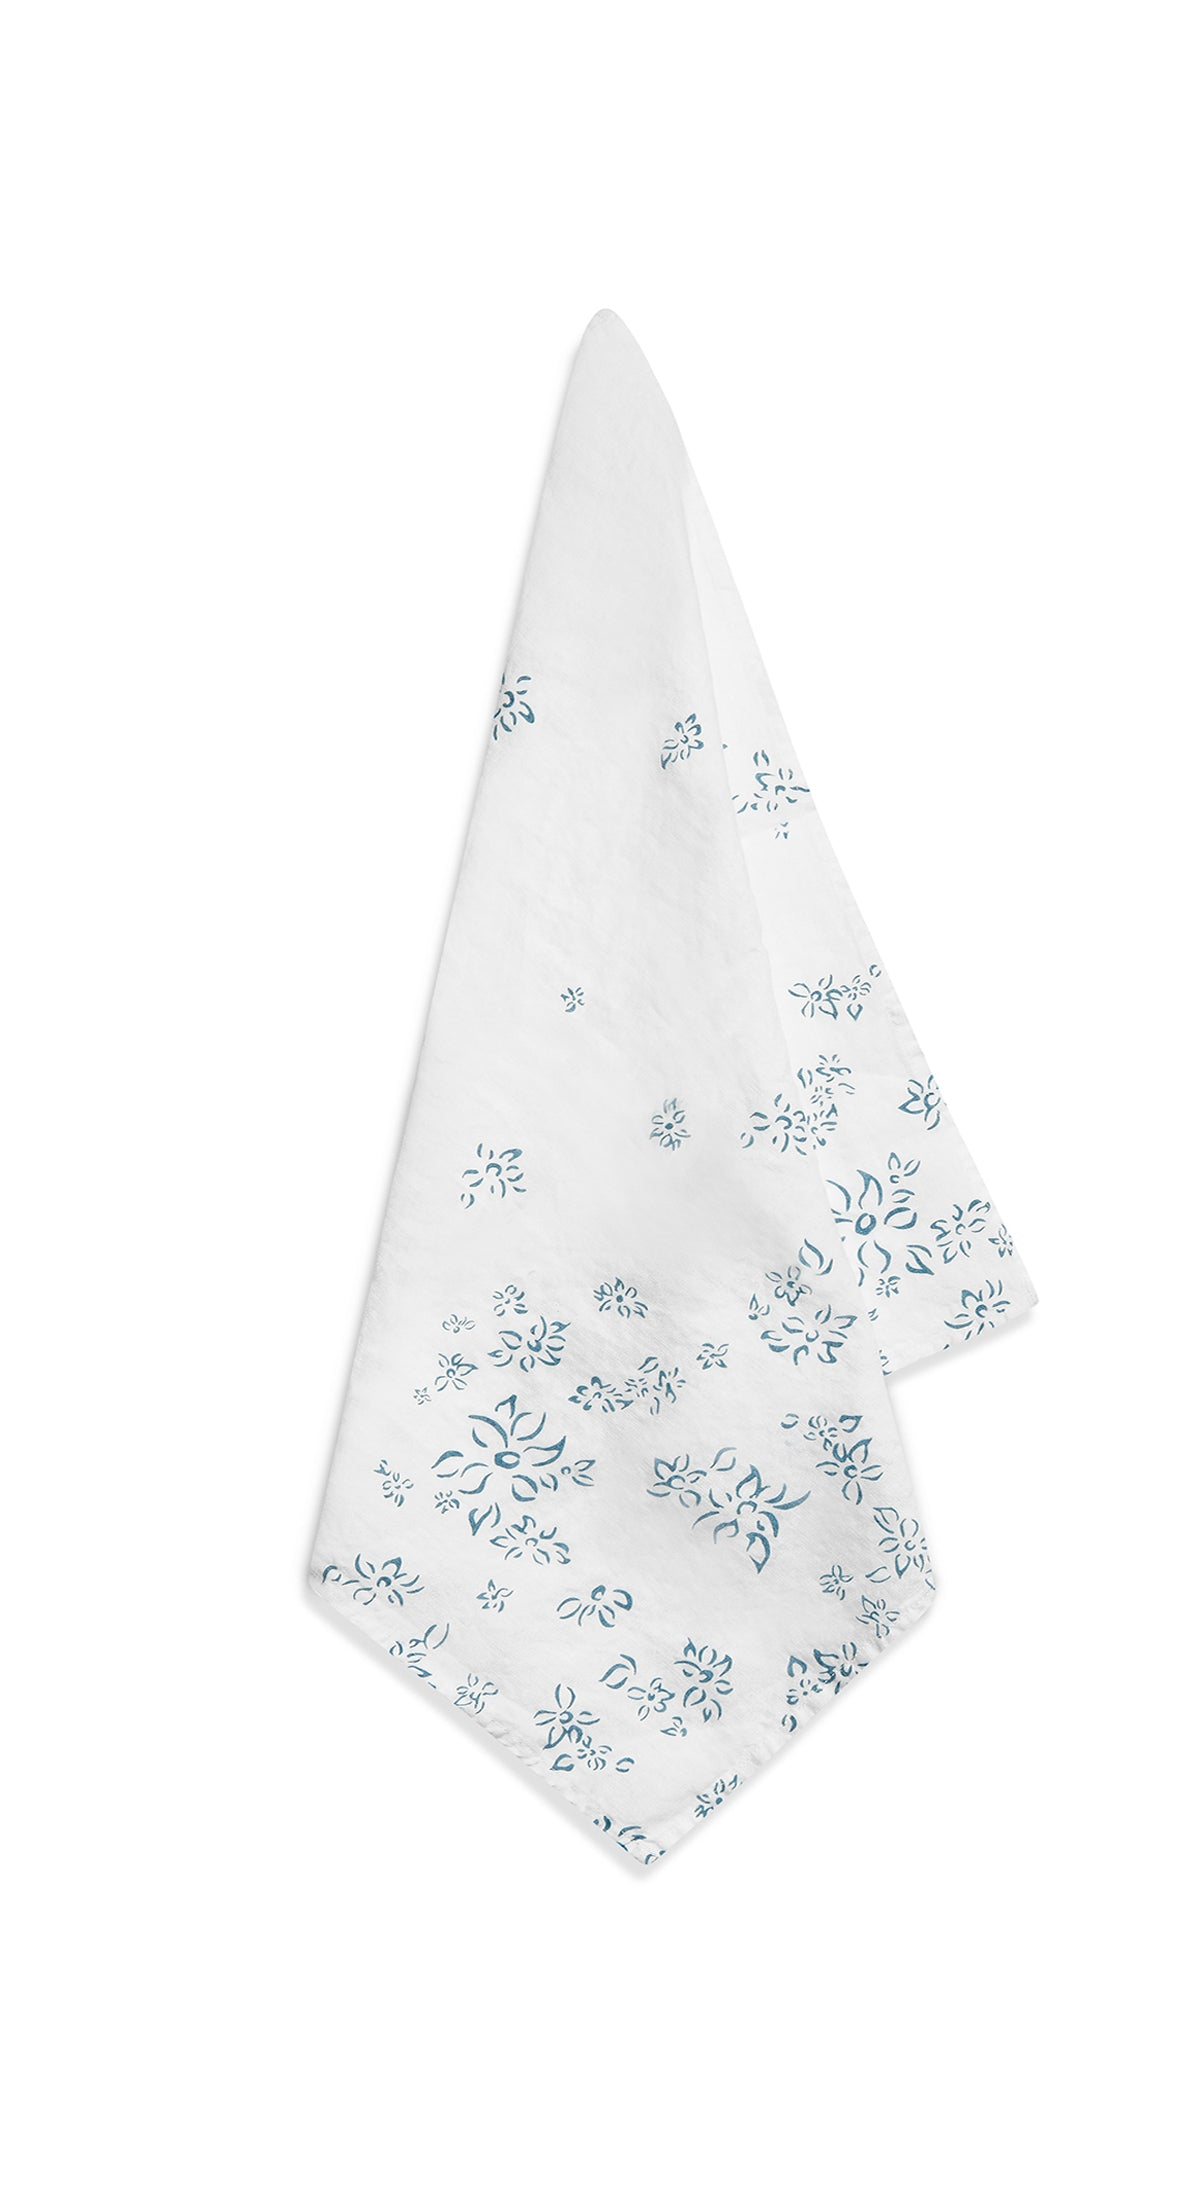 Bernadette's Falling Flower Linen Napkin in Light Blue